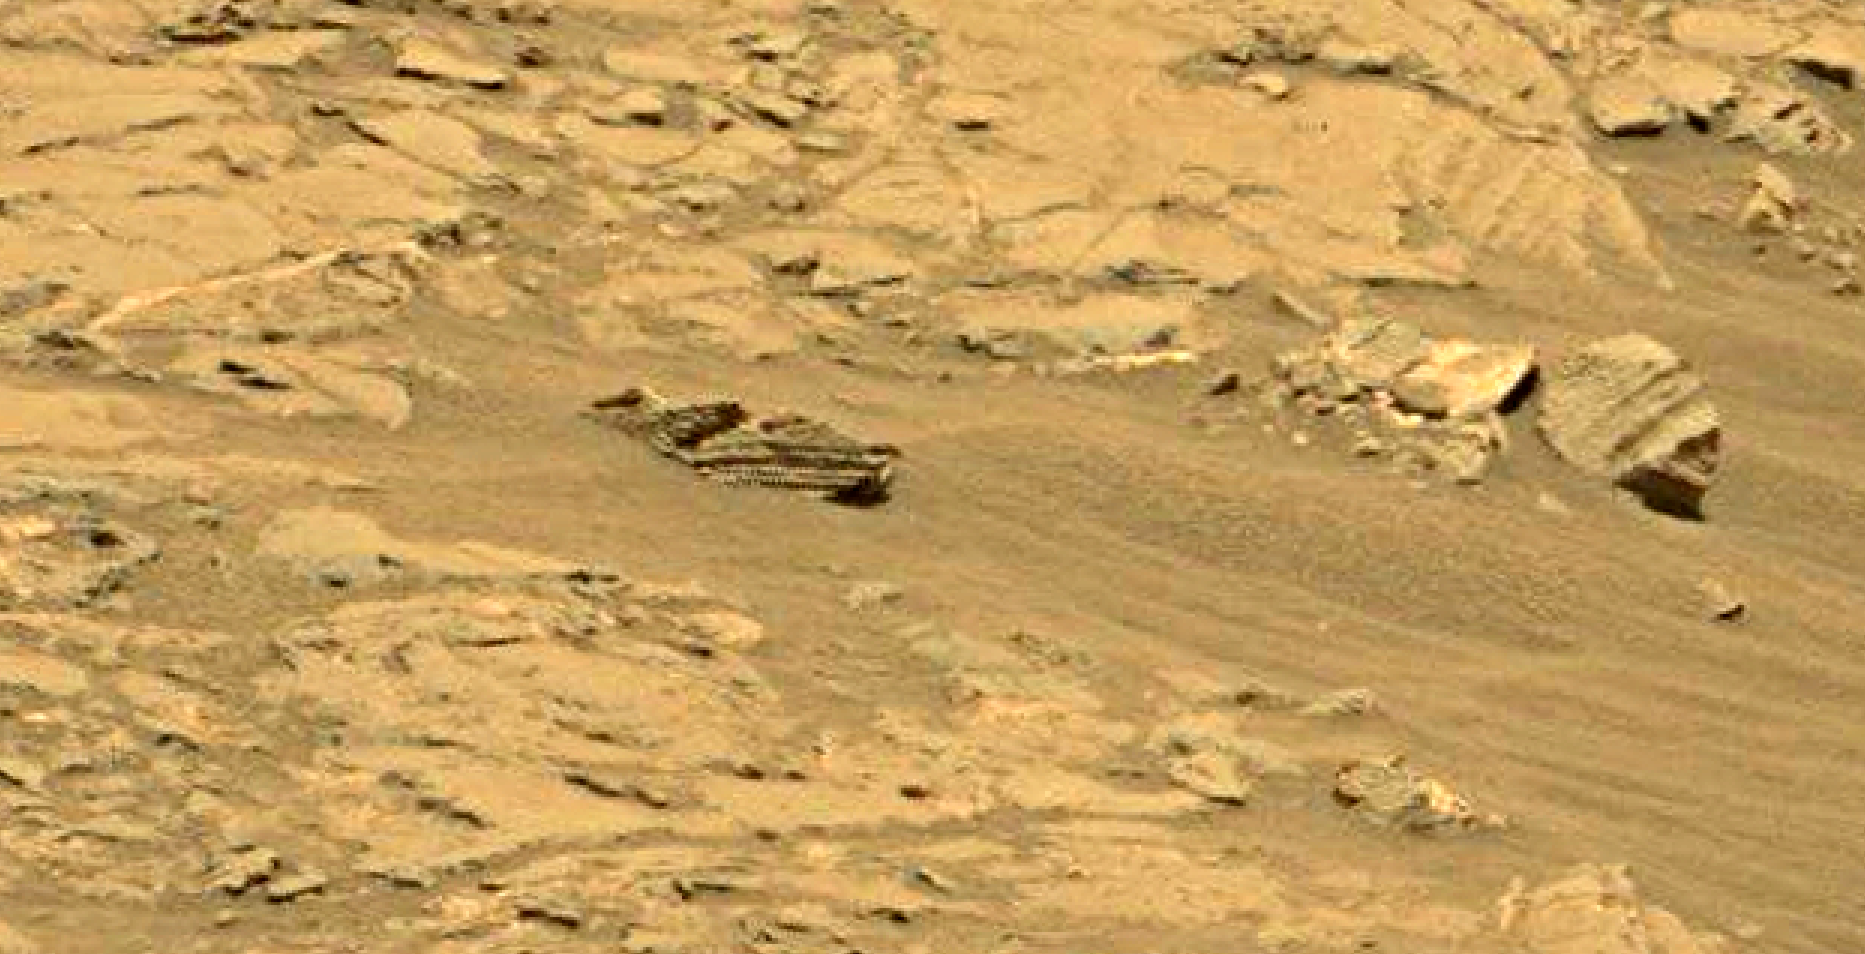 mars sol 1353 anomaly-artifacts 43 was life on mars